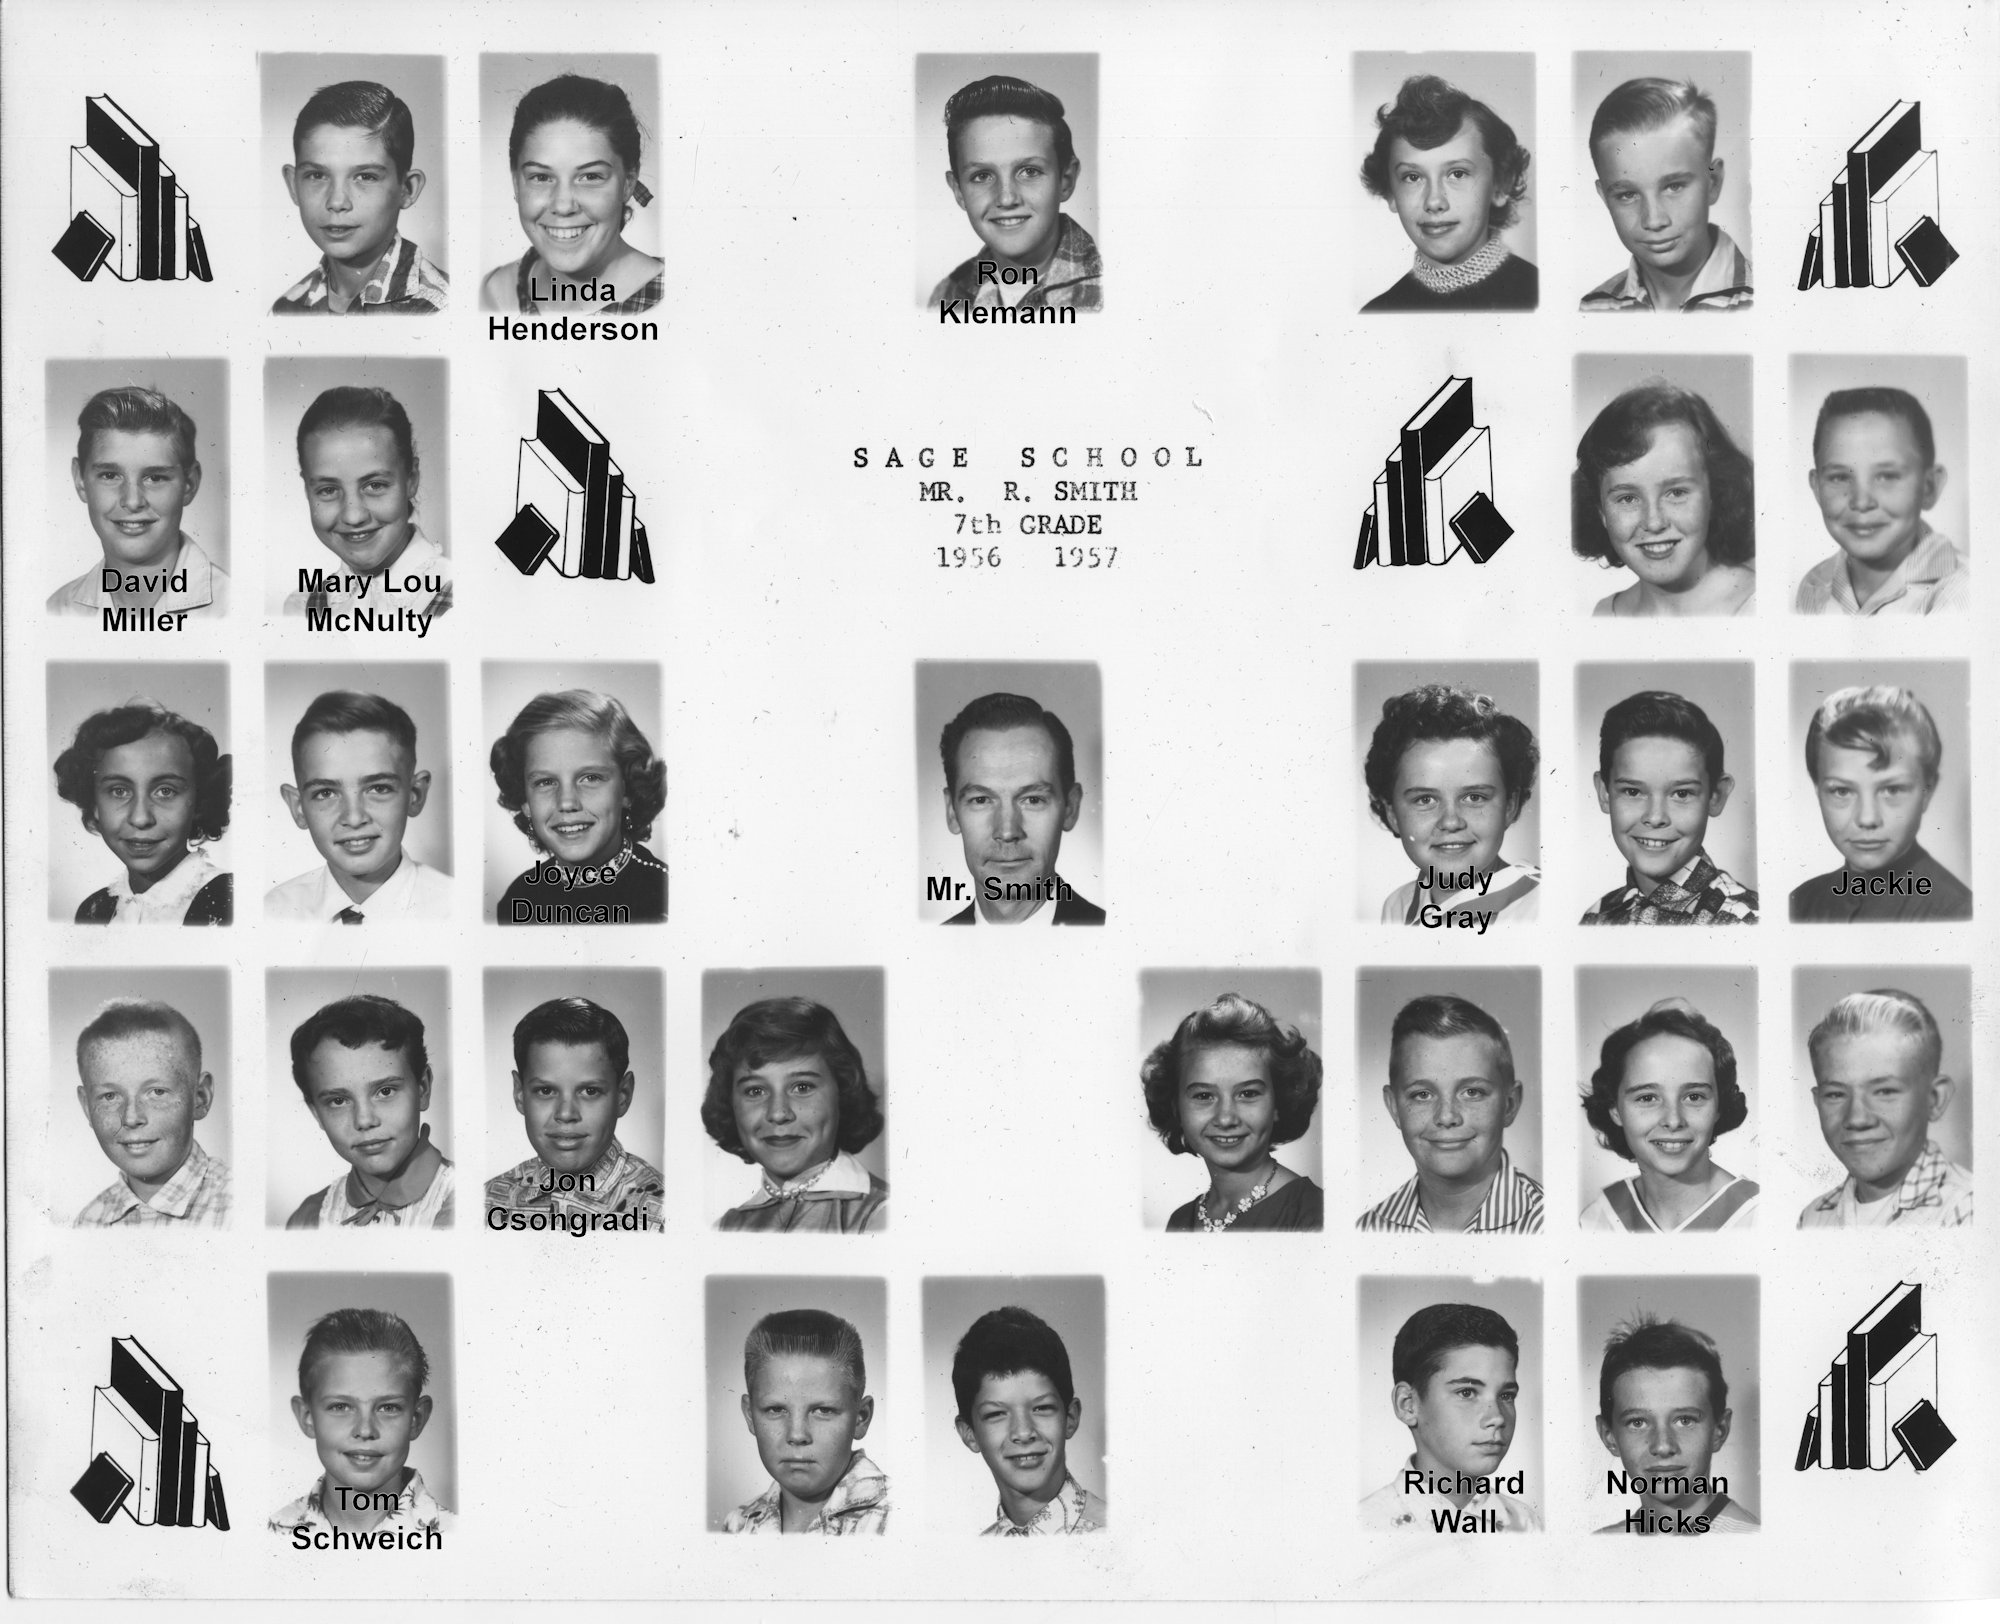 Sage School, Seventh Grade, 1956-7, Mr. Smith (with names)